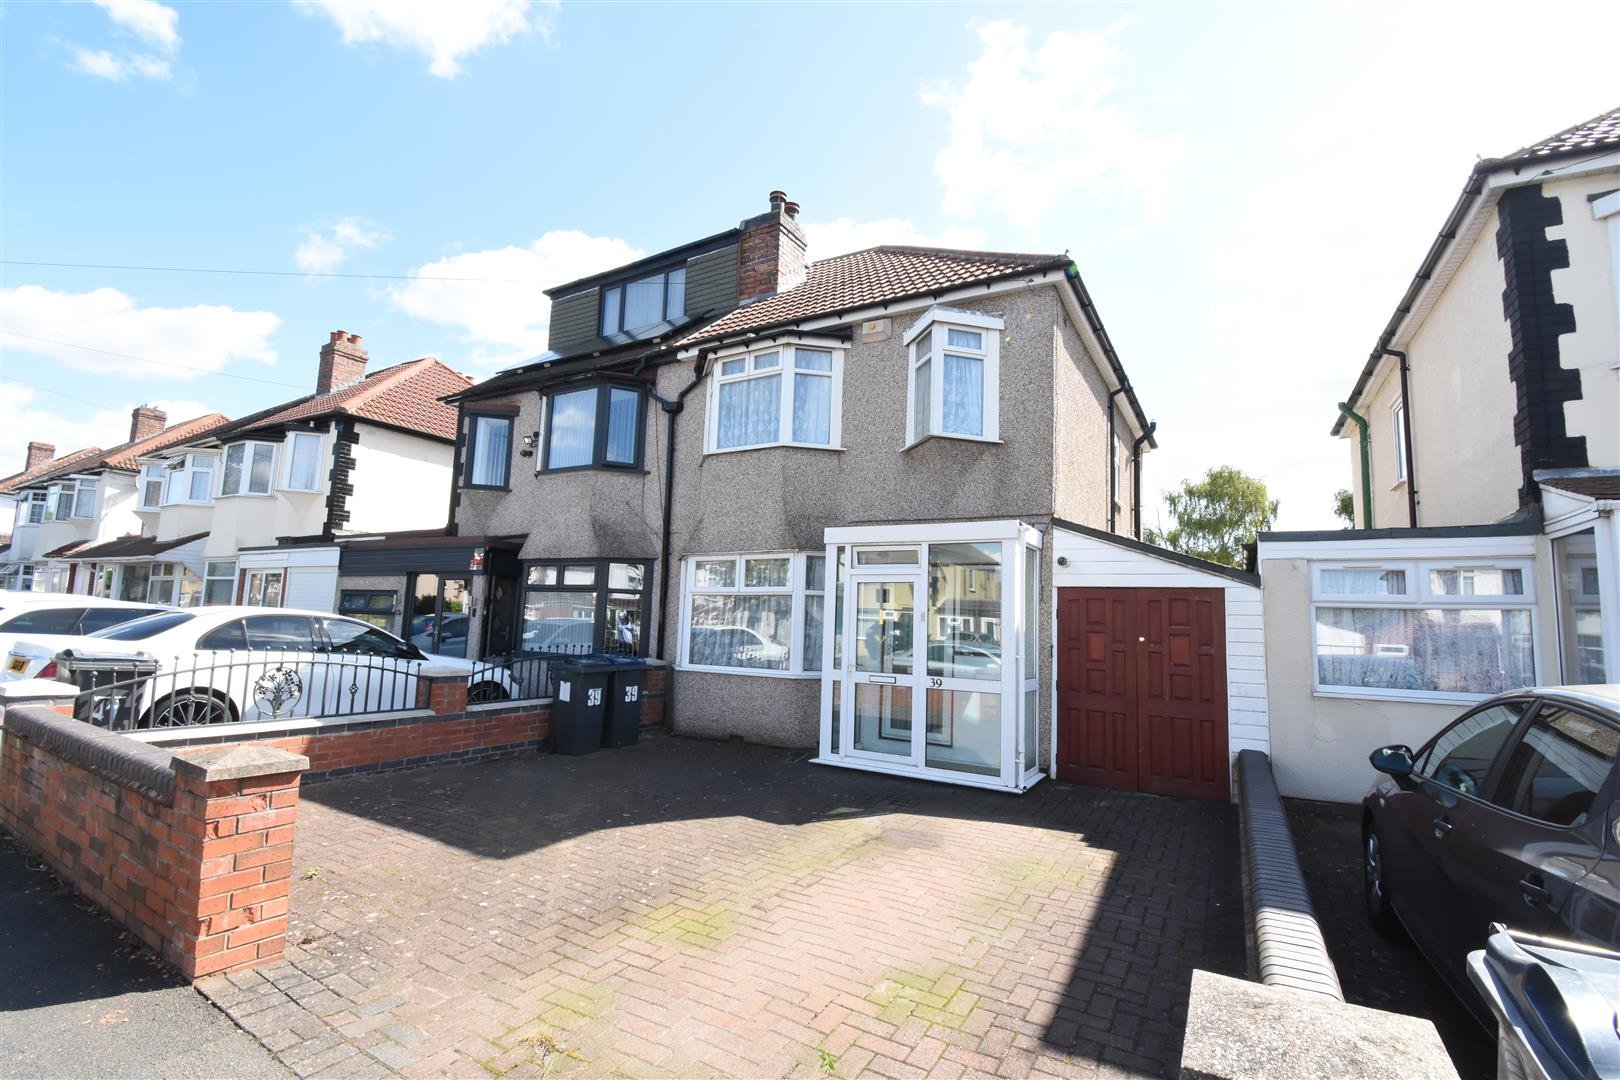 3 bed house for sale in Mickleover Road, Ward End, Birmingham 1